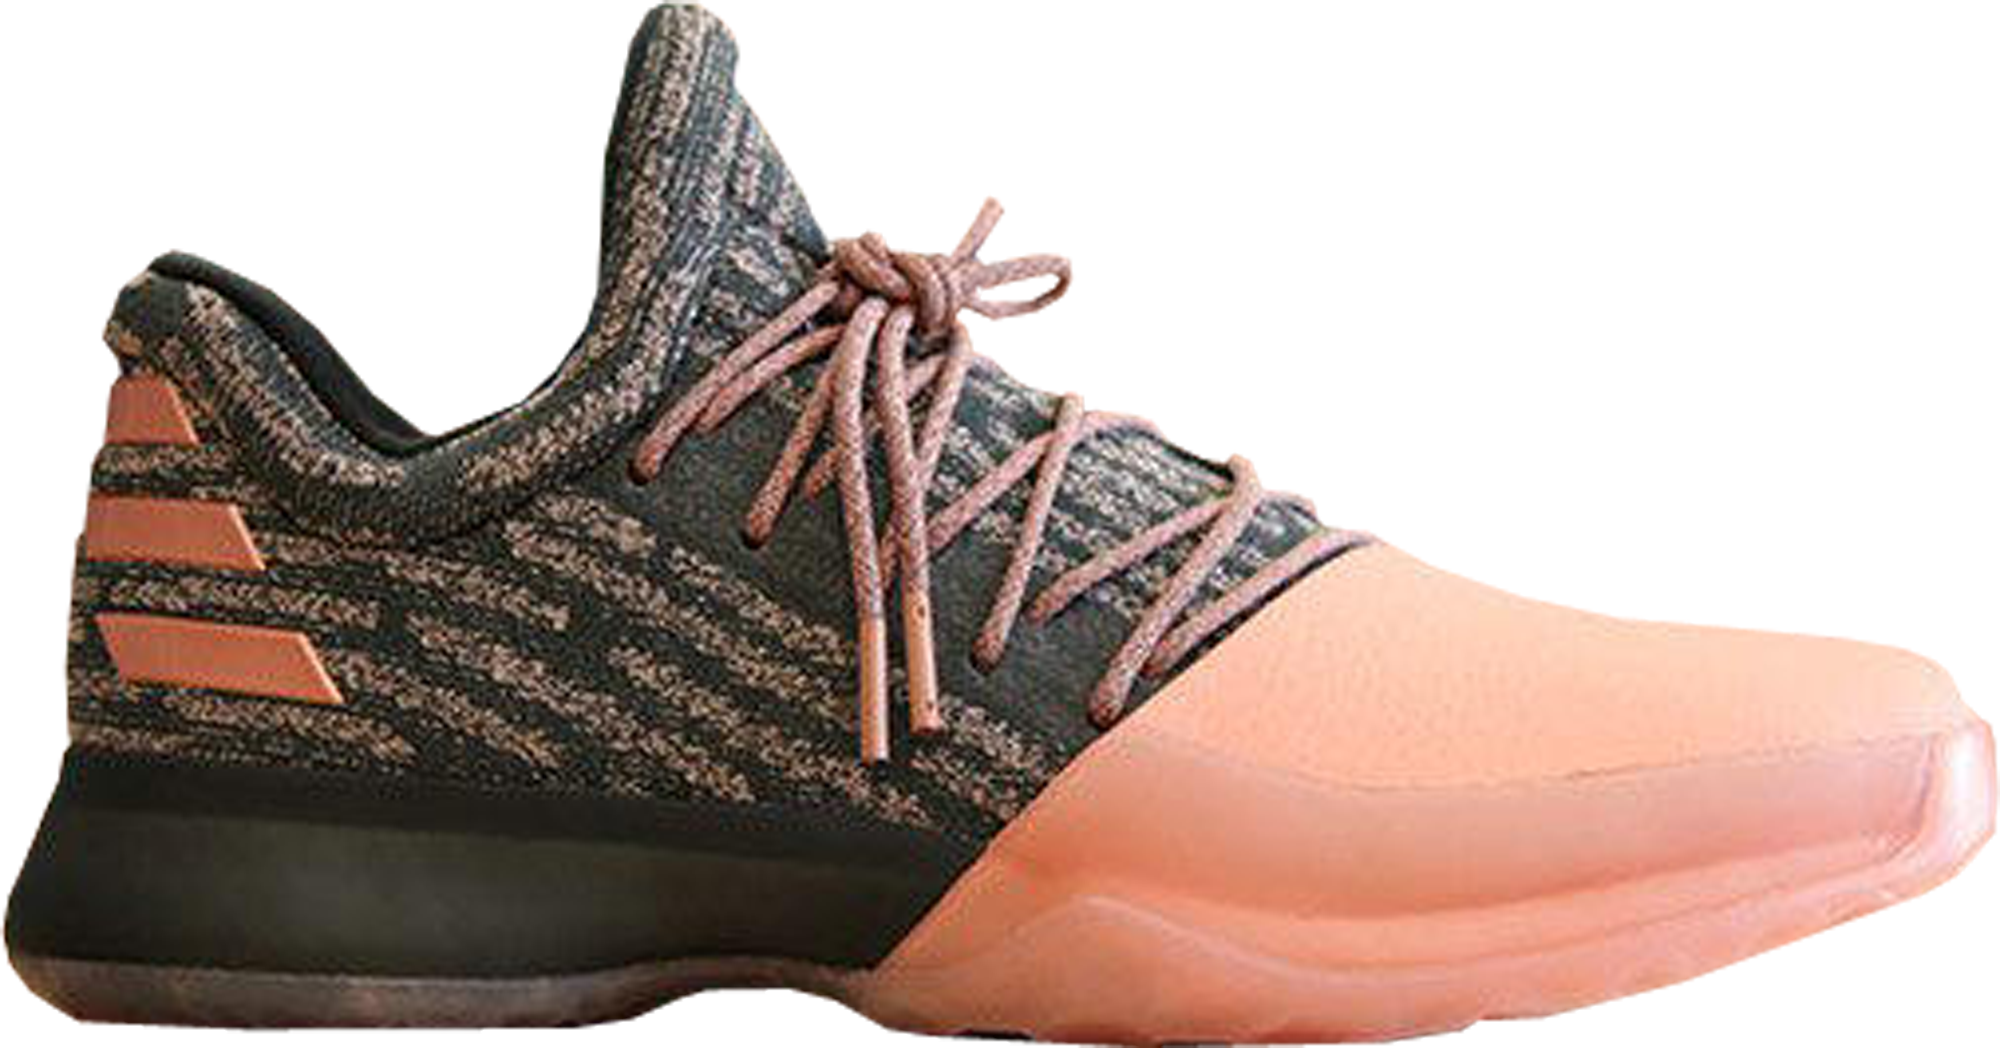 adidas Harden Vol. 1 Gila Monster